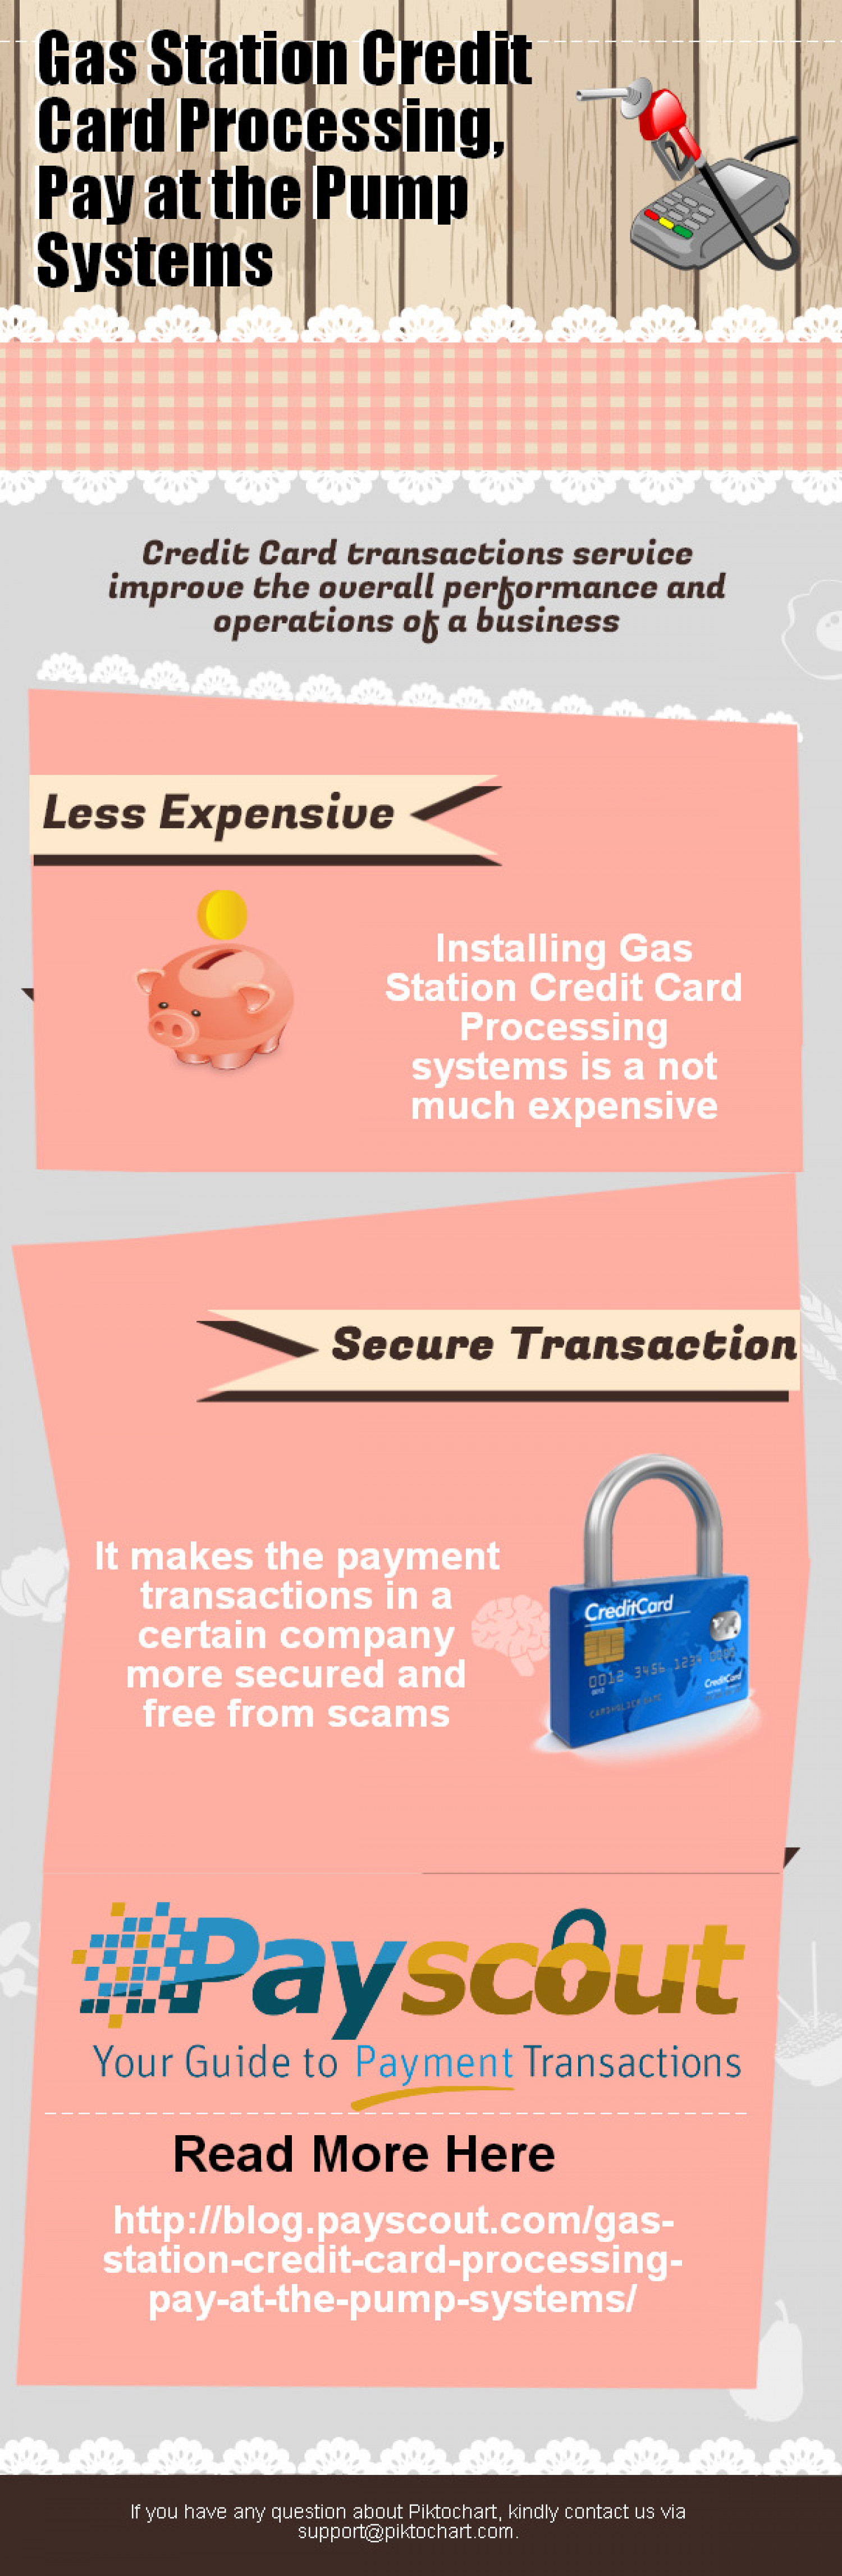 Gas Station Credit Card Processing, Pay at the Pump Systems